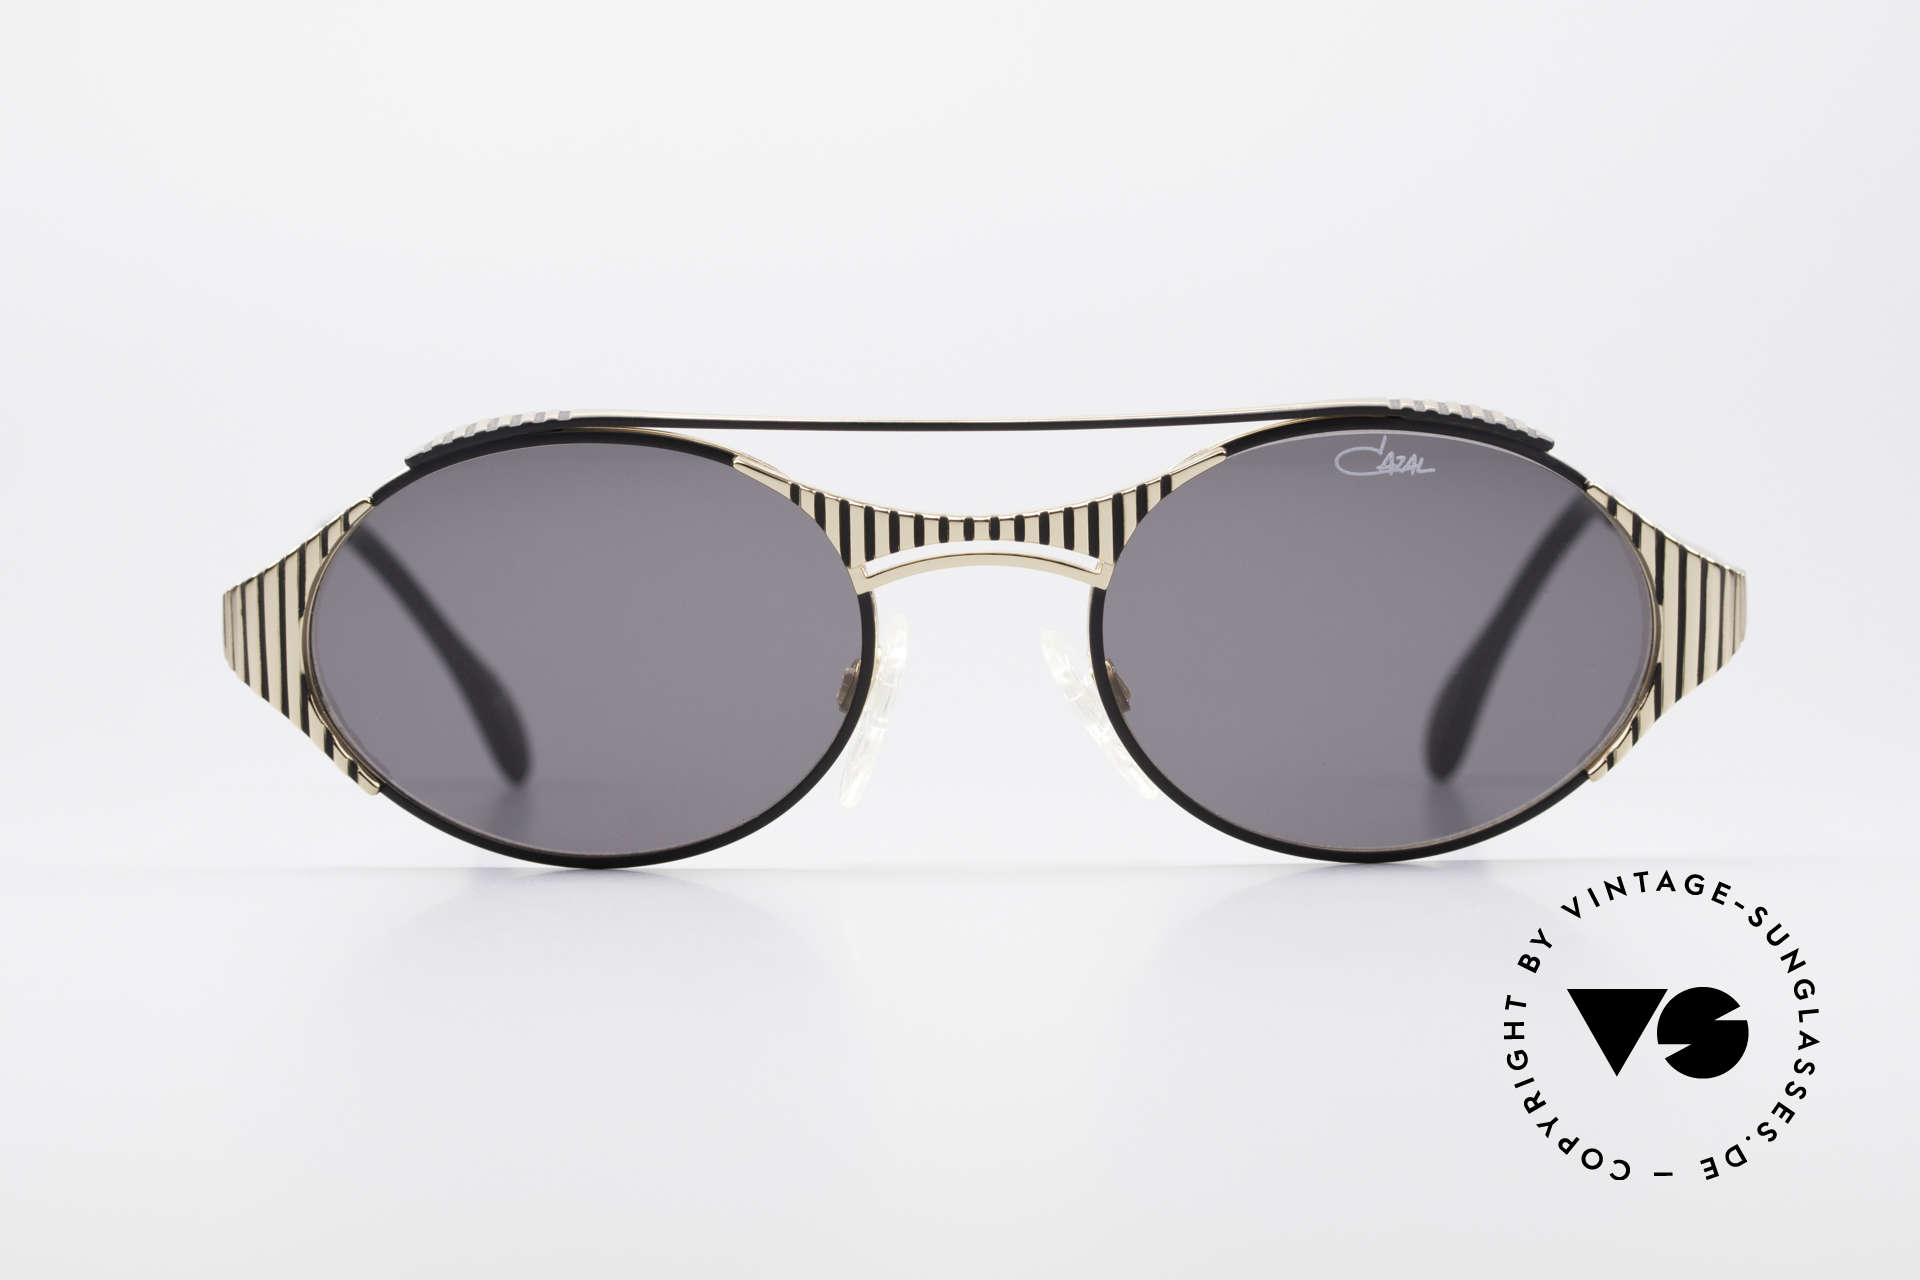 Cazal 978 Rare 90's Designer Sunglasses, incredible top-quality (You must feel this!) - vertu!, Made for Men and Women